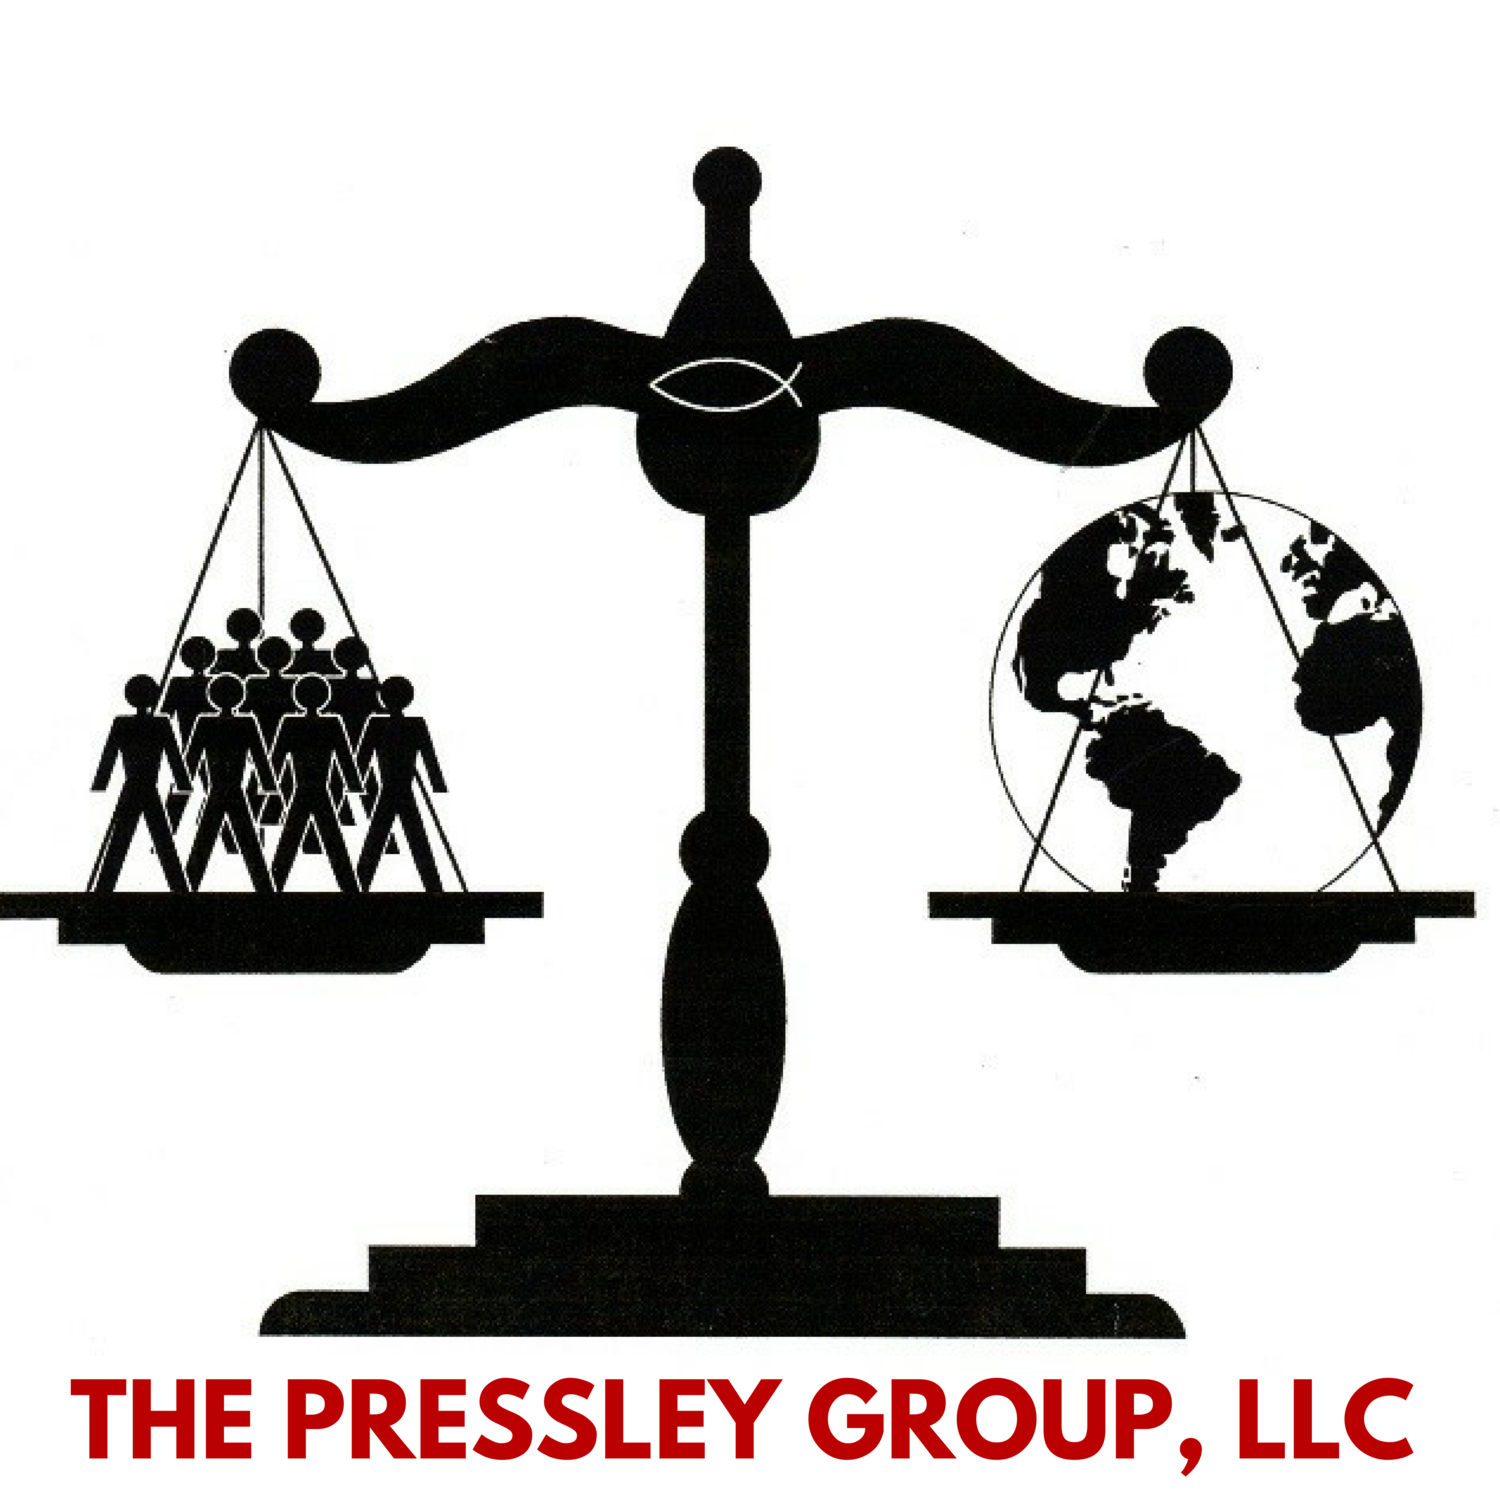 The Pressley Group, LLC